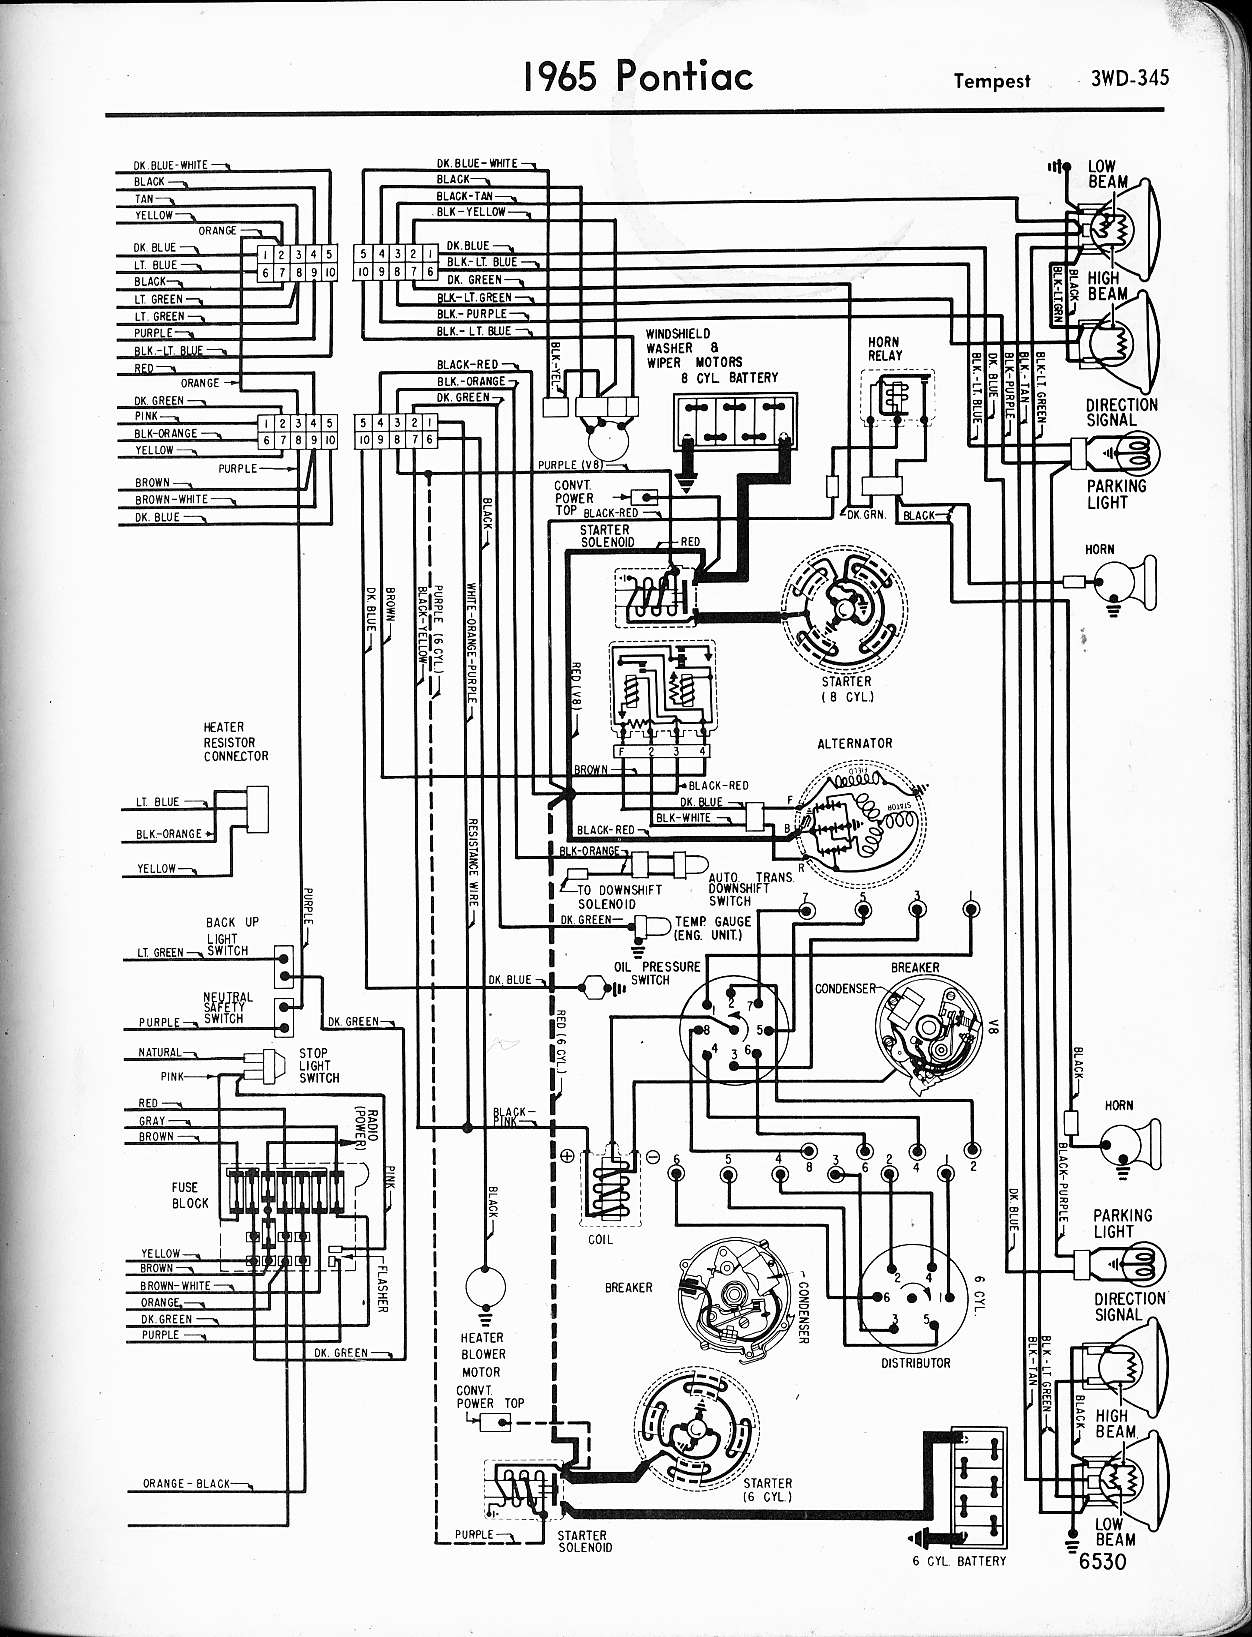 68 Corvette Dash Wiring Diagram Starting Know About 1969 1968 Another Blog U2022 Rh Ok2 Infoservice Ru